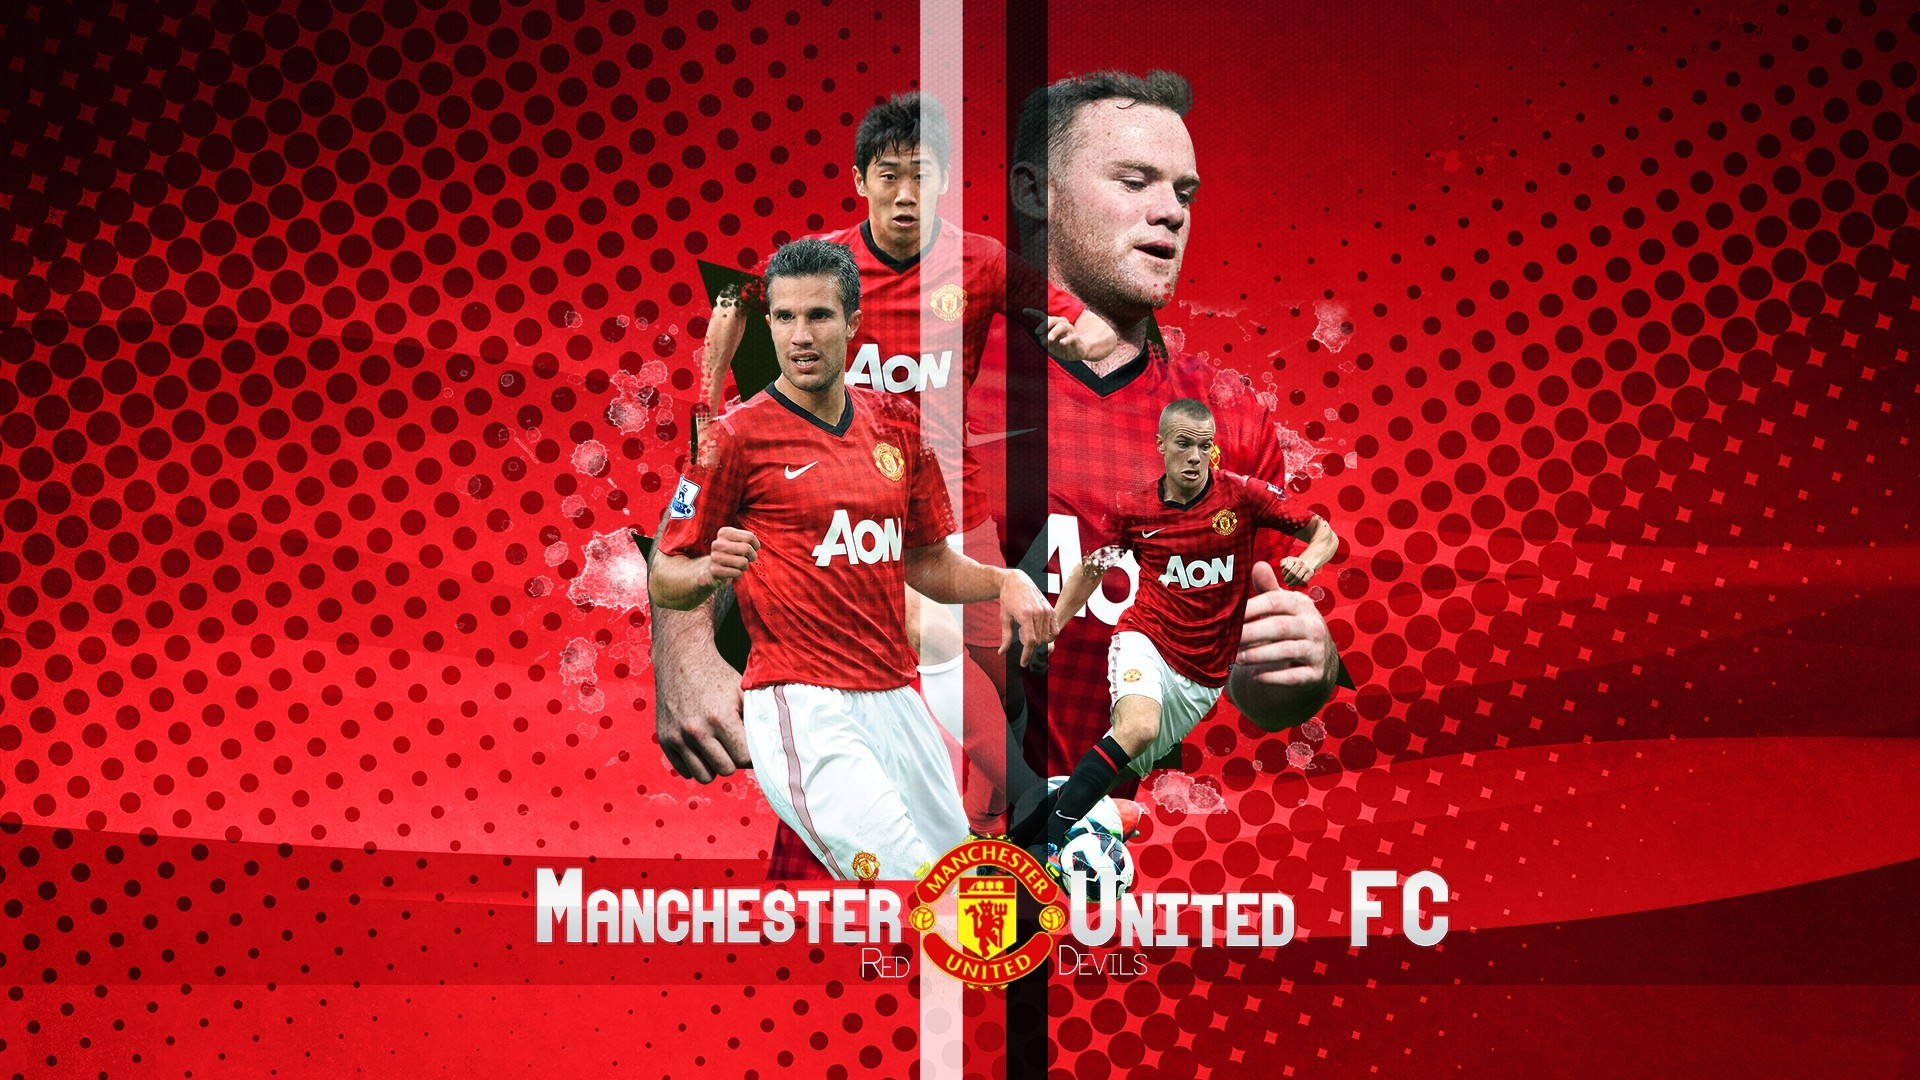 Man utd backgrounds 69 images - Cool man united wallpapers ...